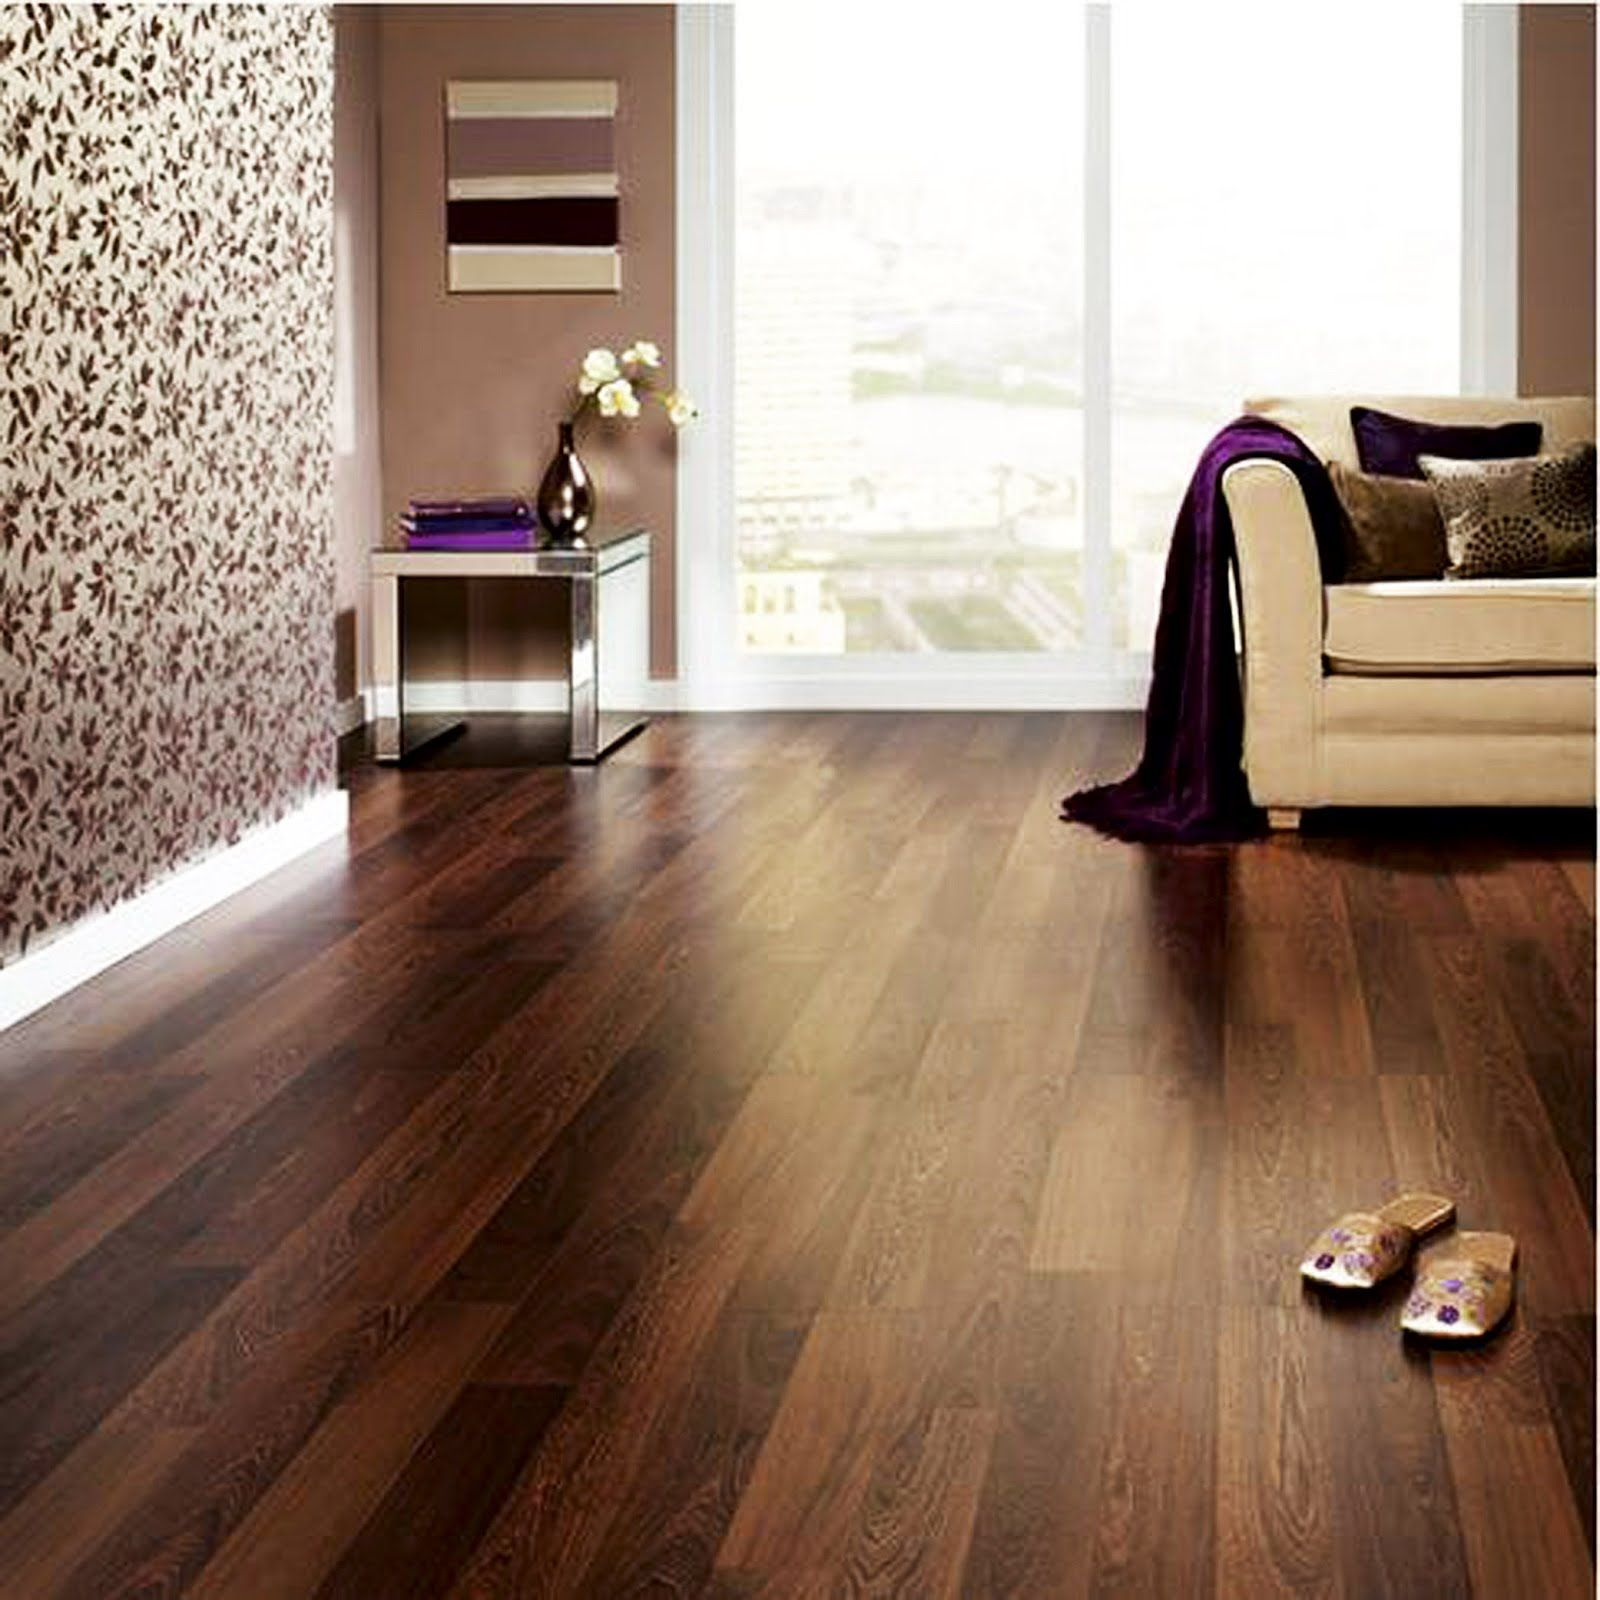 Endearing Laminate Wood Flooring Idea Installed In Modern Living Room With  Brown Mahogany Fake Wood Planks Finish